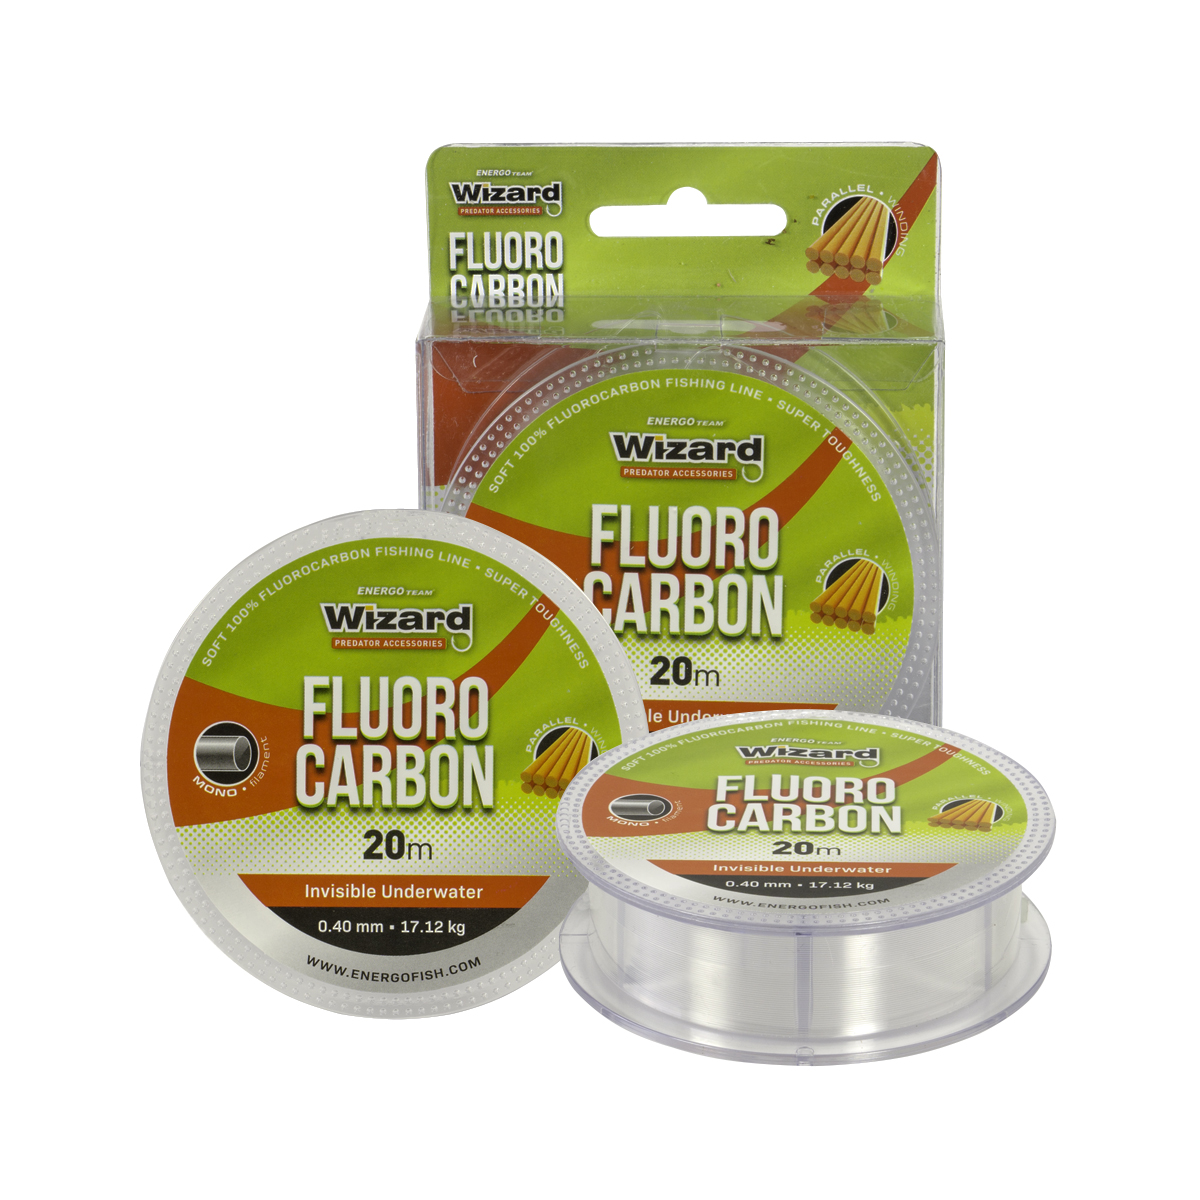 WIZARD Fluorocarbon Transparent - 0.50mm/20m/22.35kg